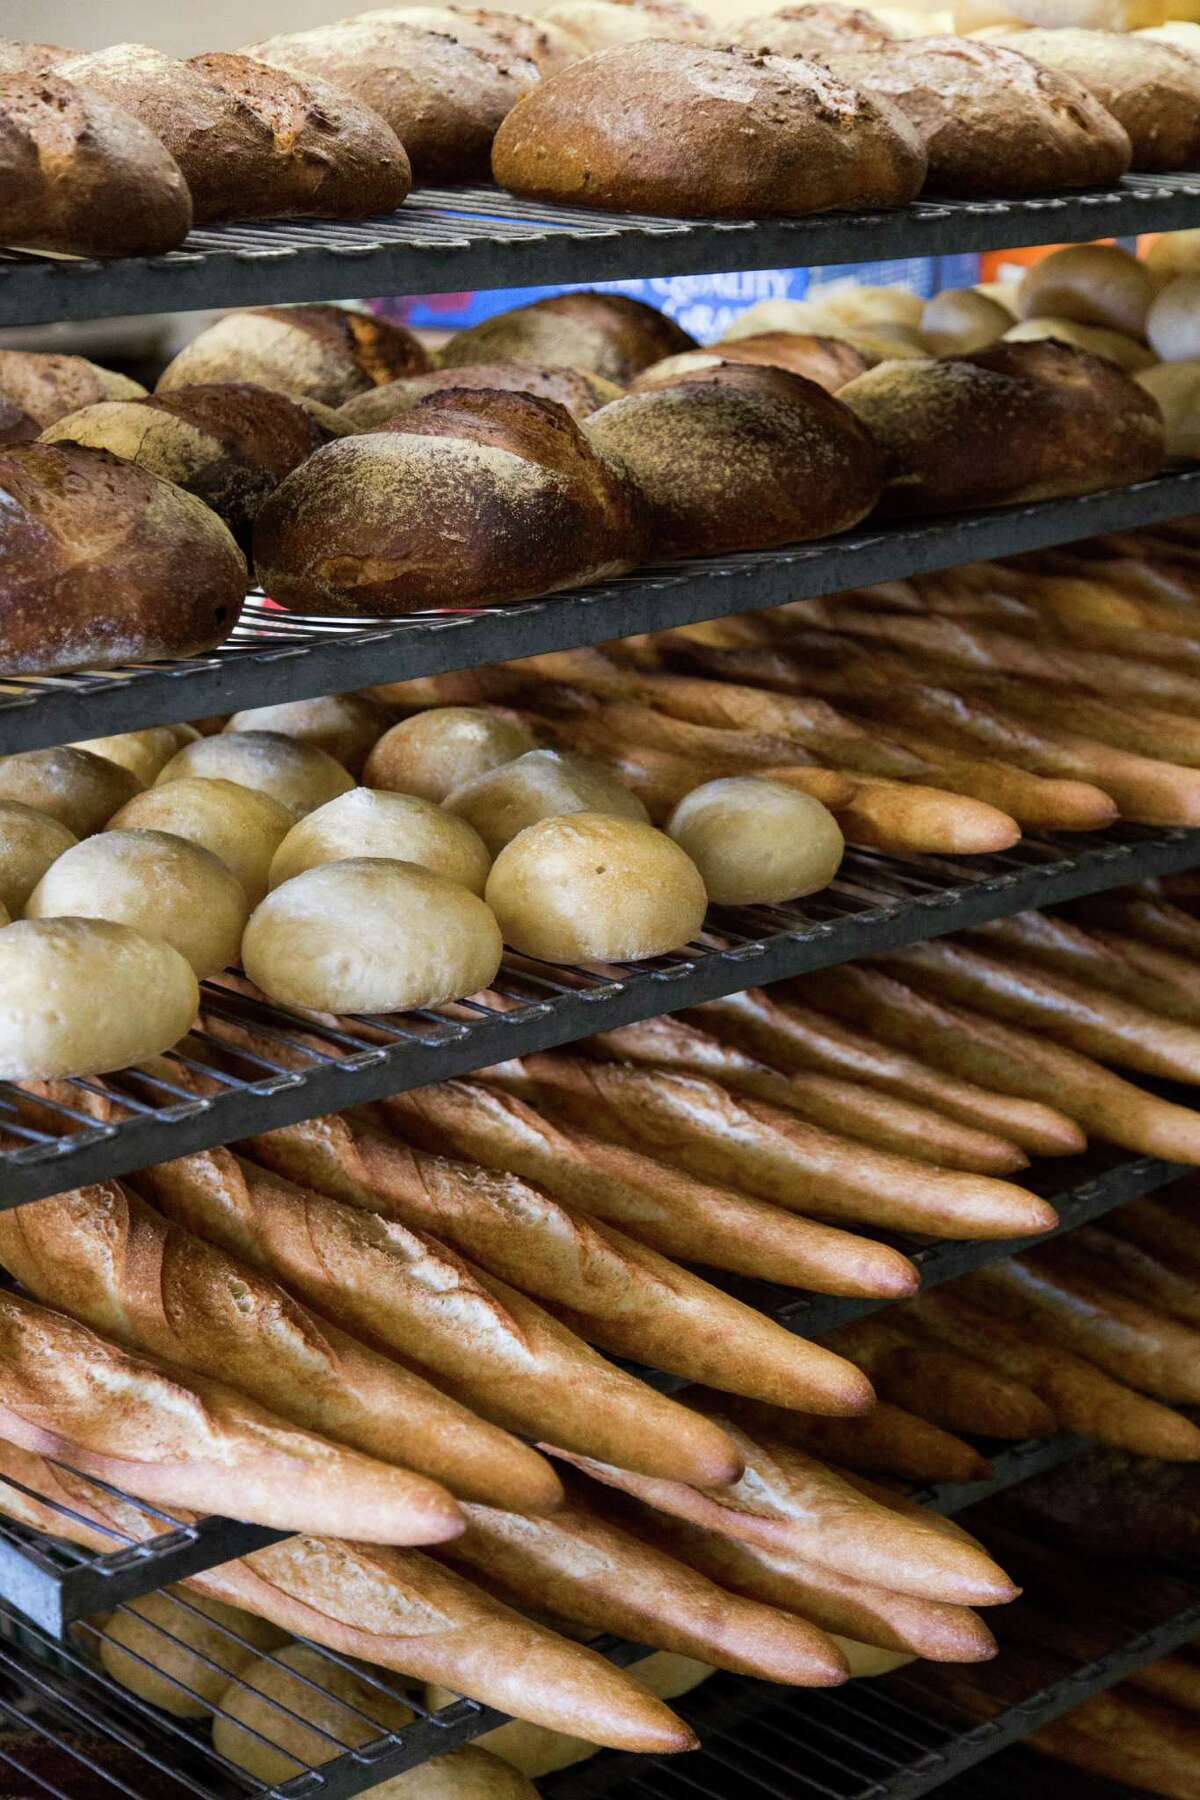 A variety of freshly baked artisan breads cool on the racks at Hush-Harbor Bakery in Atascadero. Among the offerings: sourdough, rustic Italian, ciabatta, brioche and whole wheat.